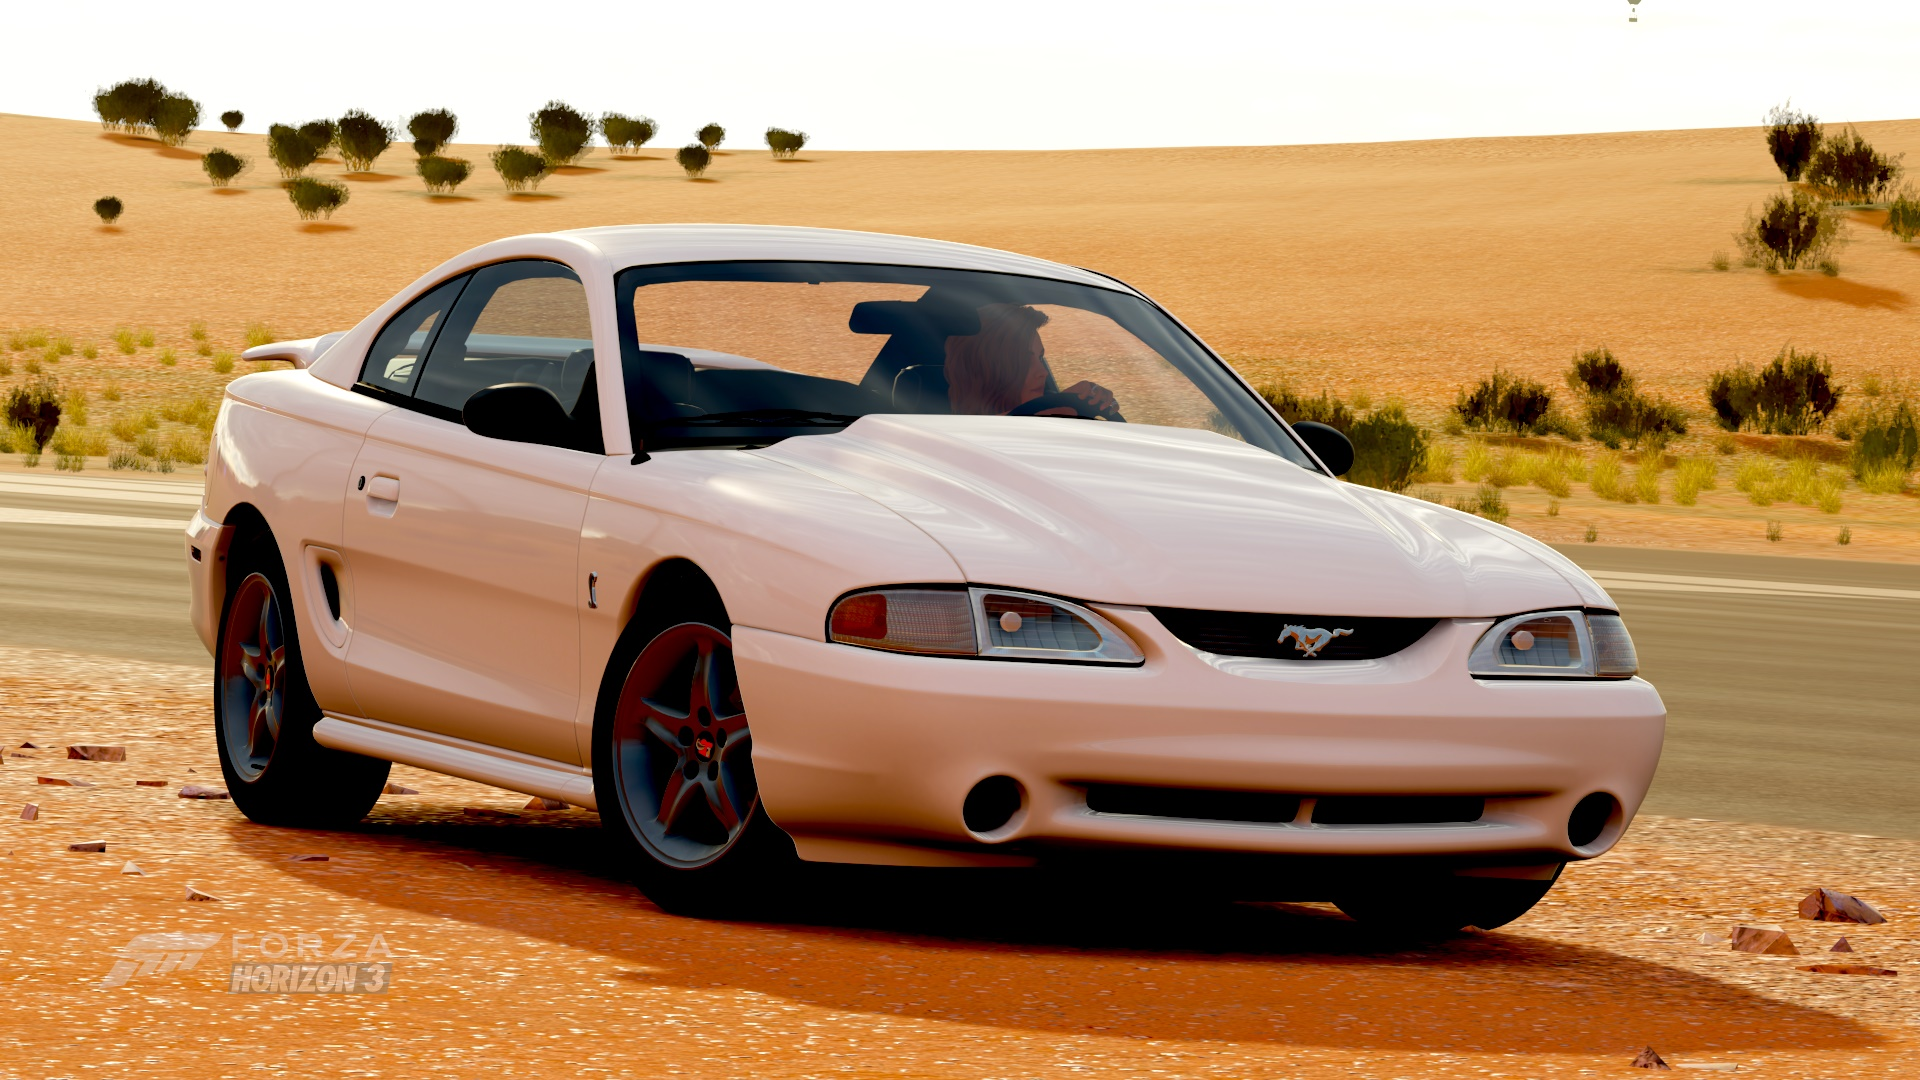 medium resolution of 1995 ford svt cobra r photo by badriver